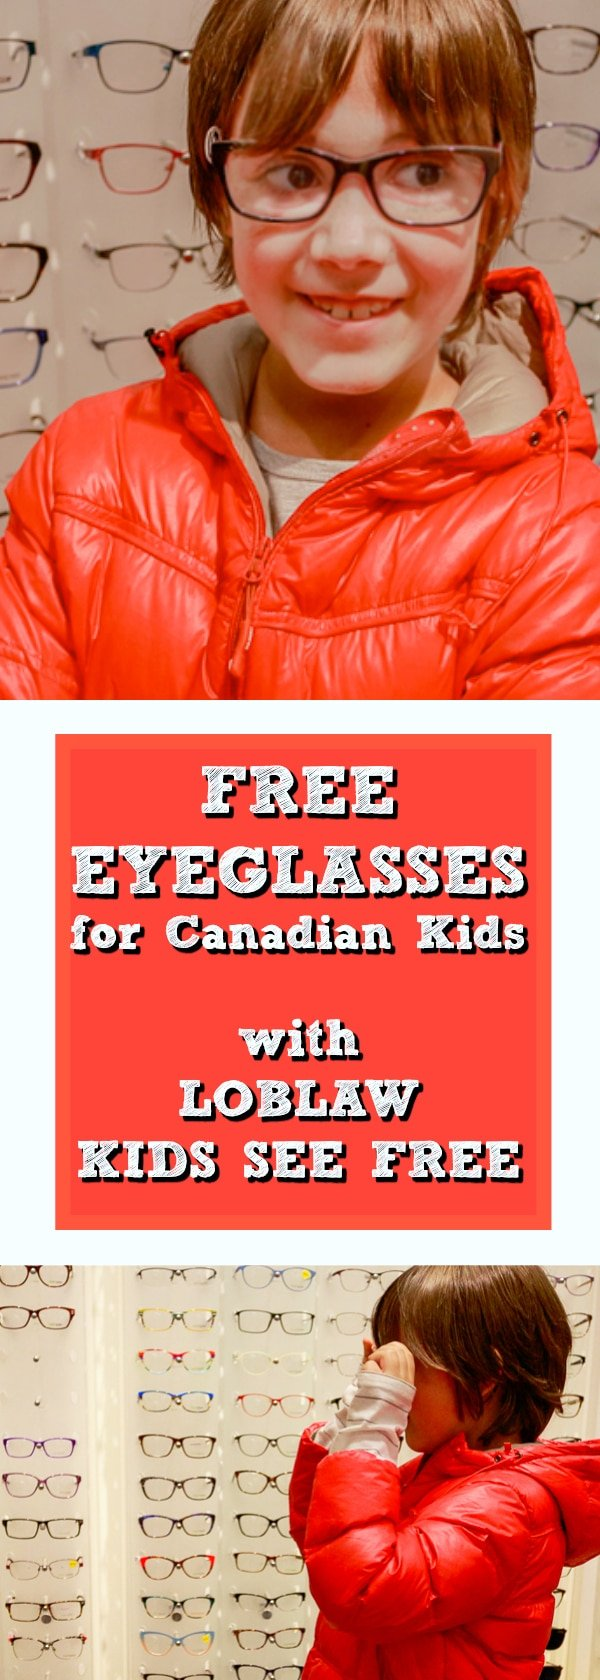 Kids See Free with Loblaw Optical. Totally free eyeglasses for kids ages 4 to 10. #KidsSeeFree